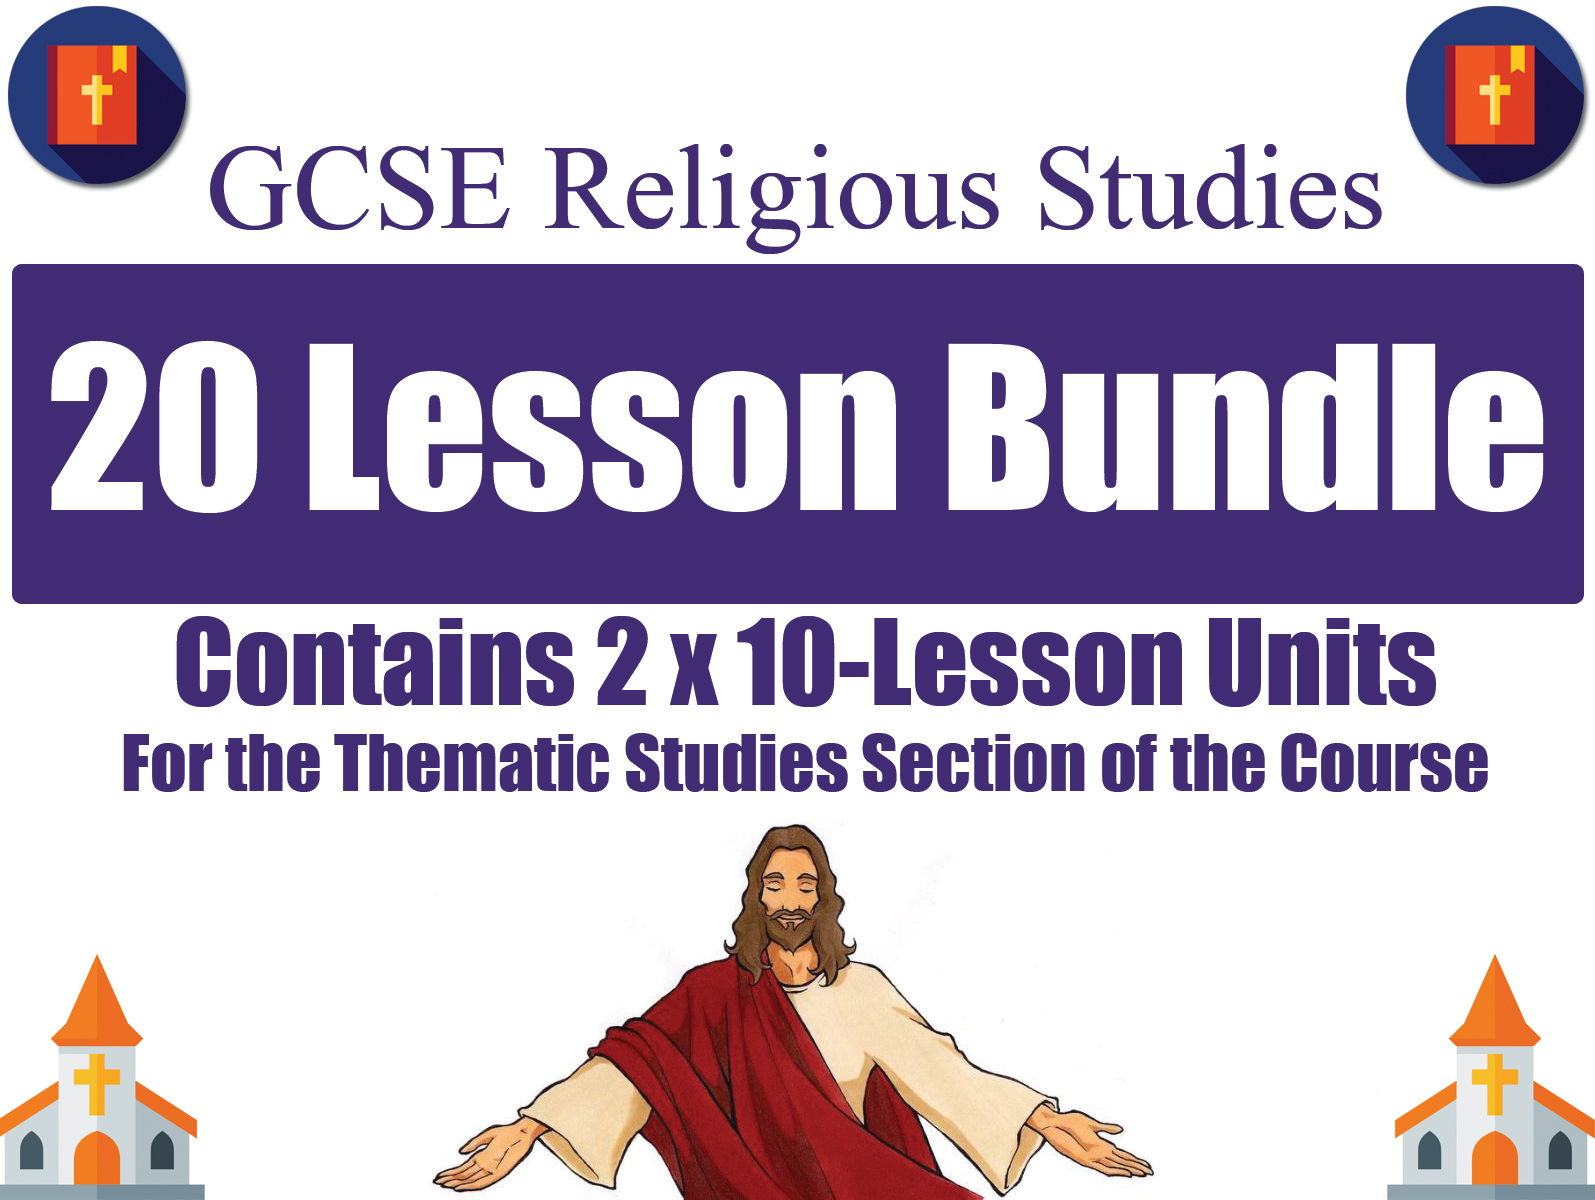 'The Existence of God & Revelation' + 'Religion, Human Rights & Social Justice' (20 Lessons) [GCSE RS - AQA]